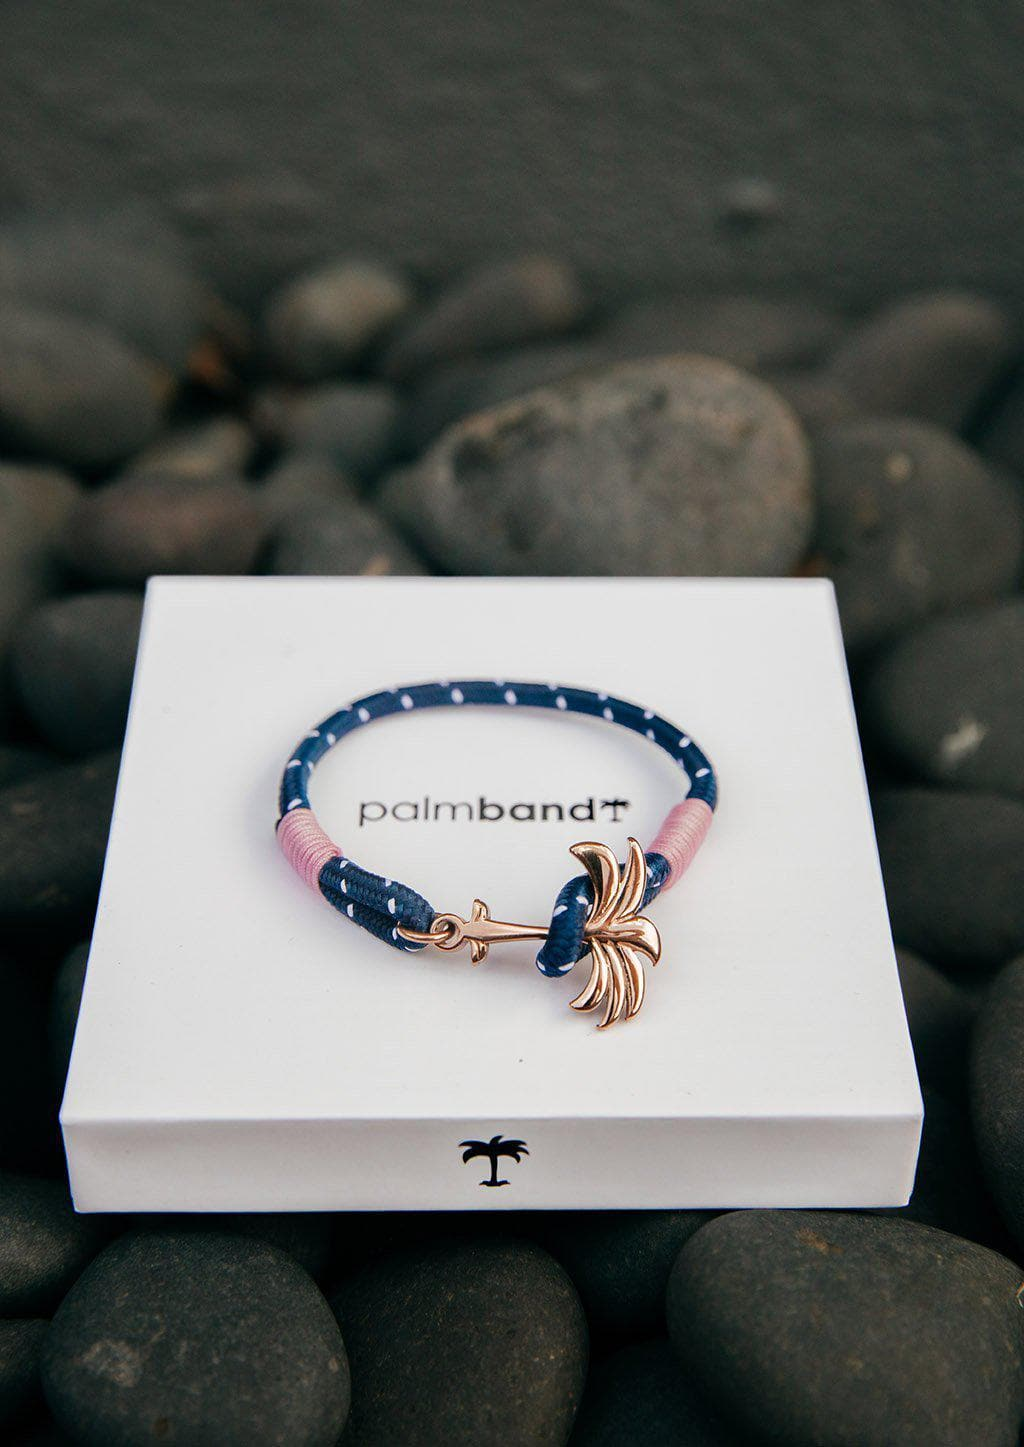 Daybreak - Single - Season two Palm anchor bracelet with pink and blue nylon band. On palm band box.